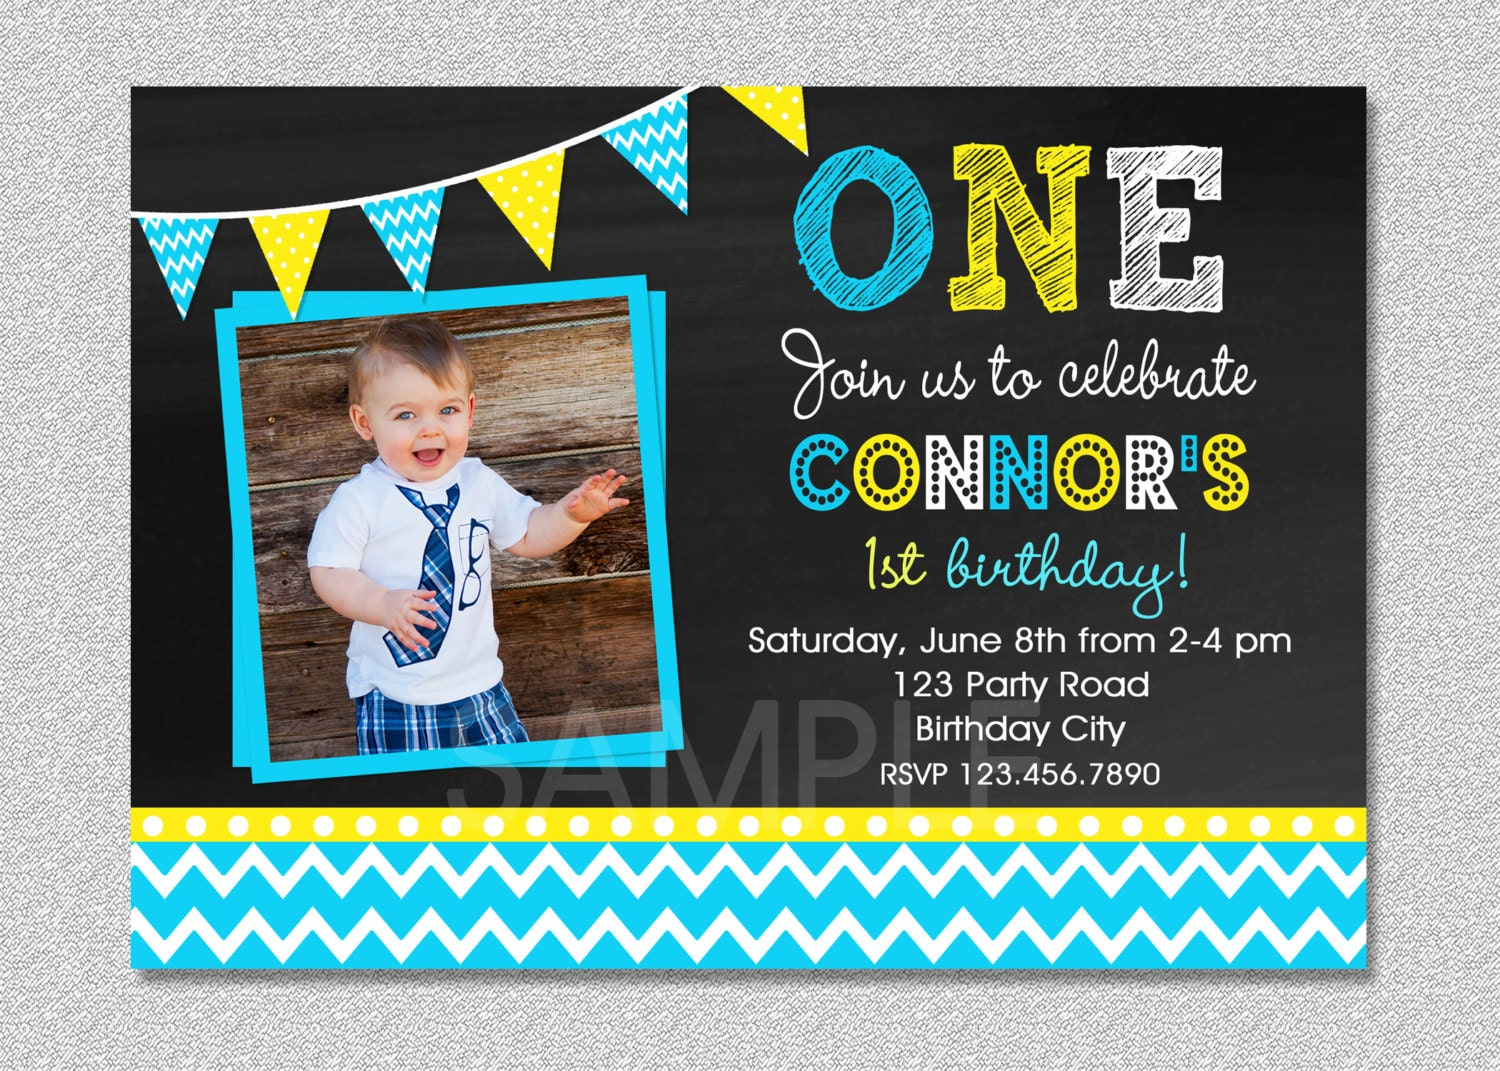 Chalkboard Birthday Invitation Chevron Chalkboard Boys